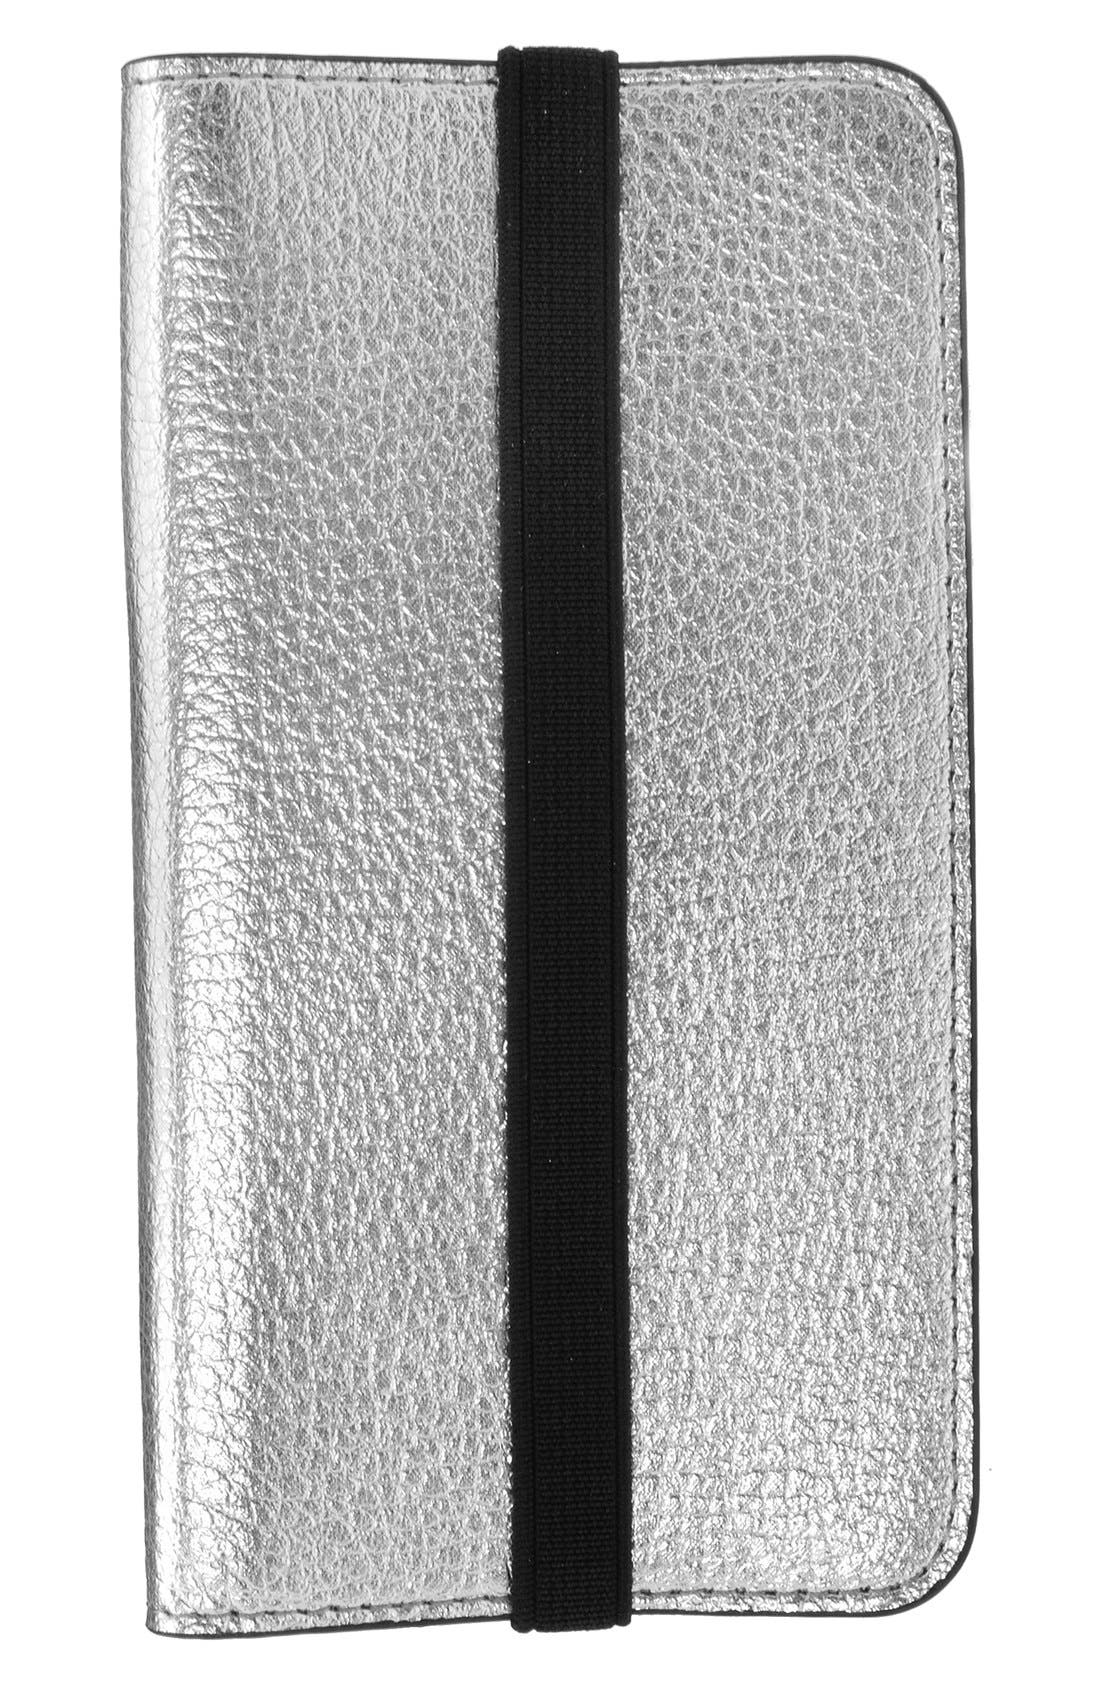 Main Image - Mobileluxe iPhone 6/6s Metallic Leather Wallet Case